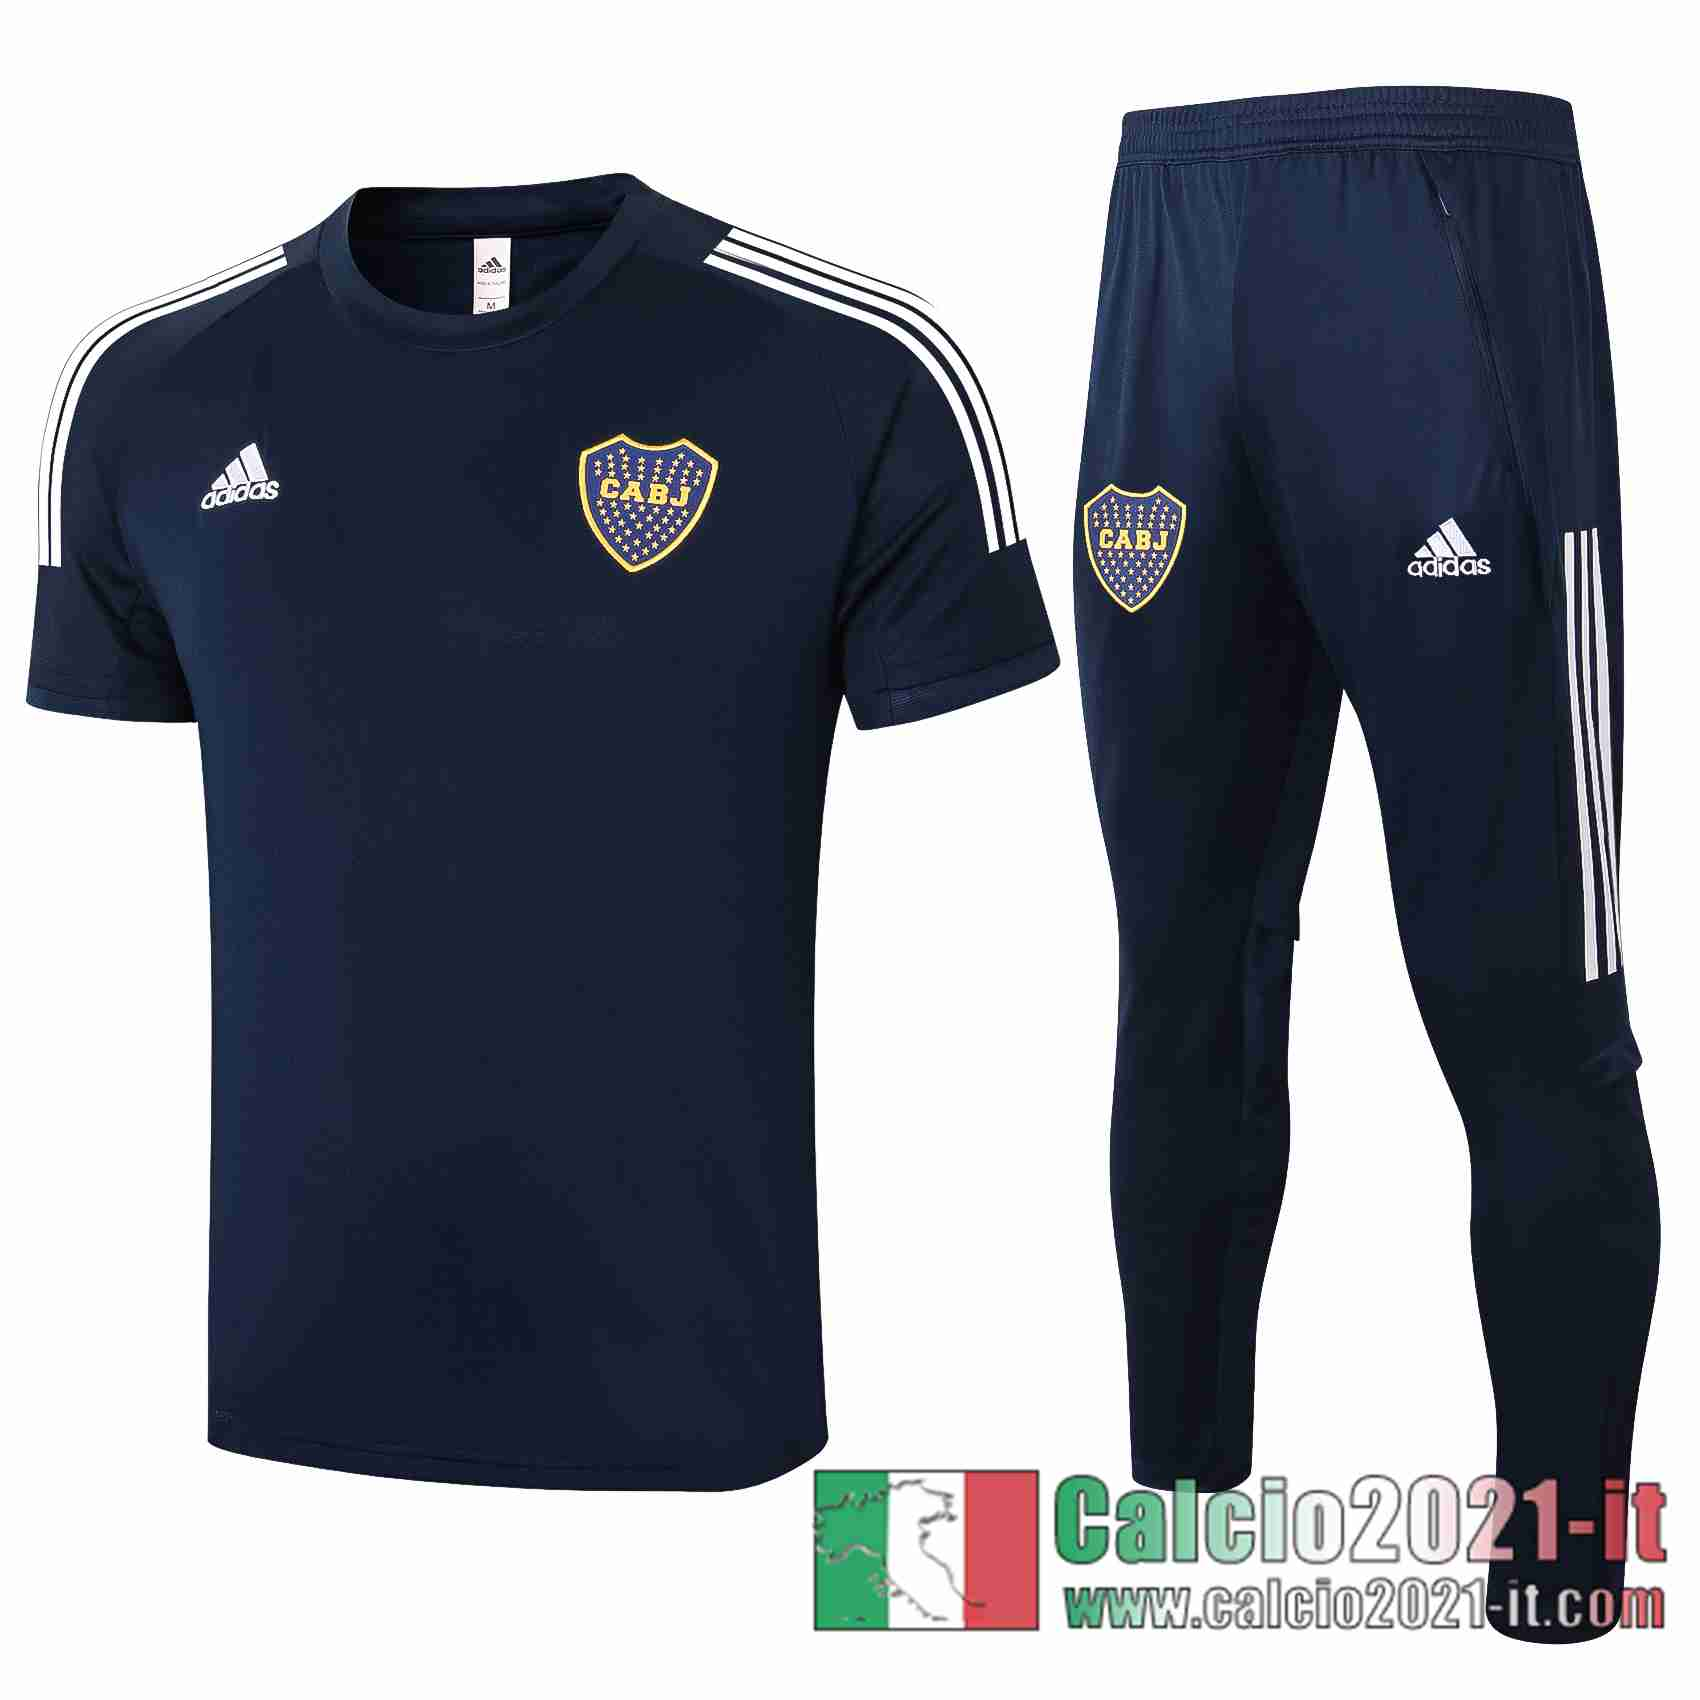 Boca Polo Calcio Blu scuro 2020 2021 C570